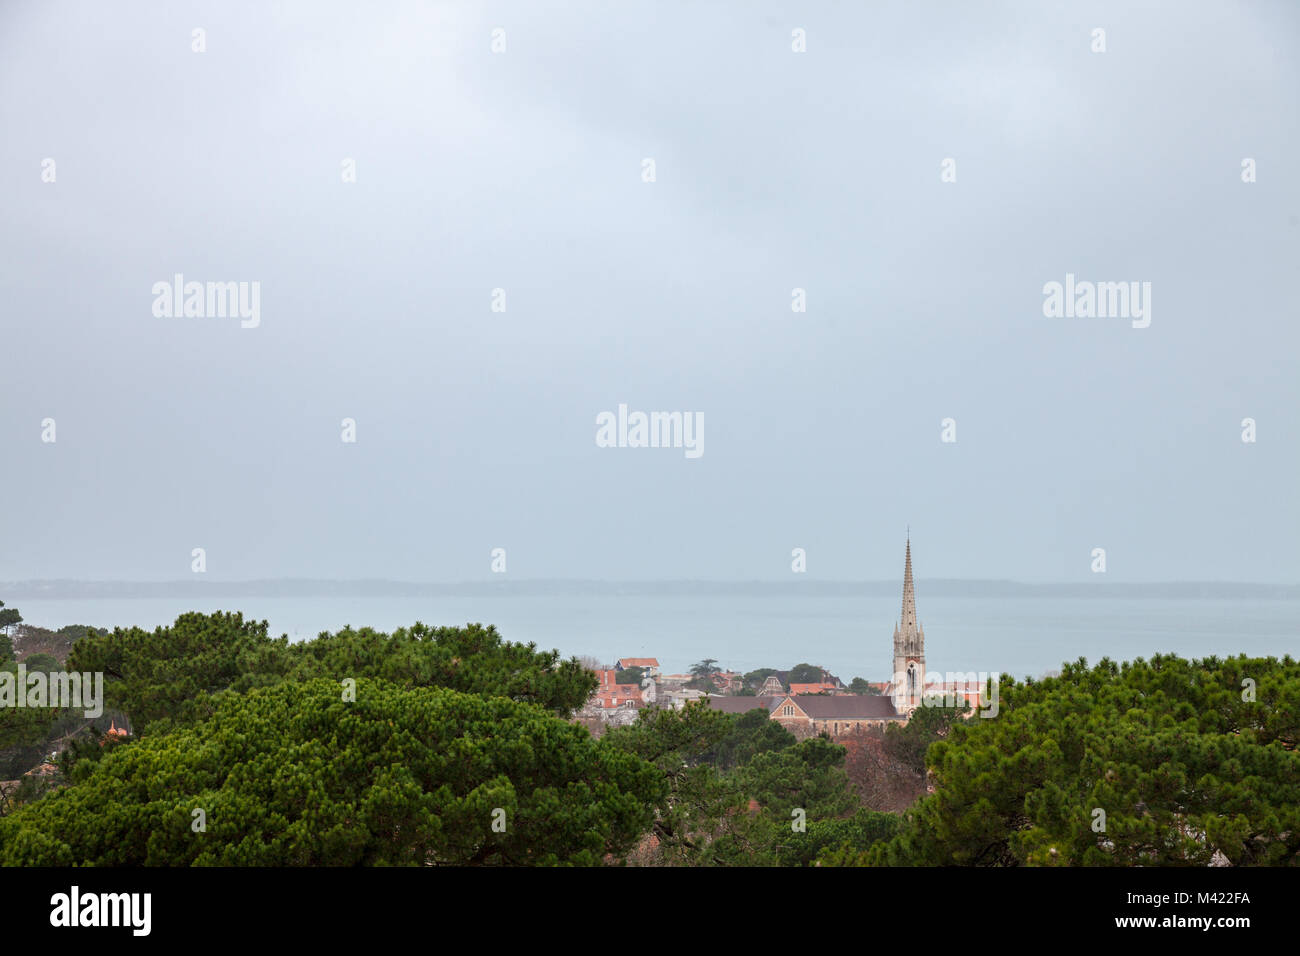 Aerial view of Arcachon, France, during a storm on a cloudy rainy day, witht the Notre Dame basilica in front. Located - Stock Image